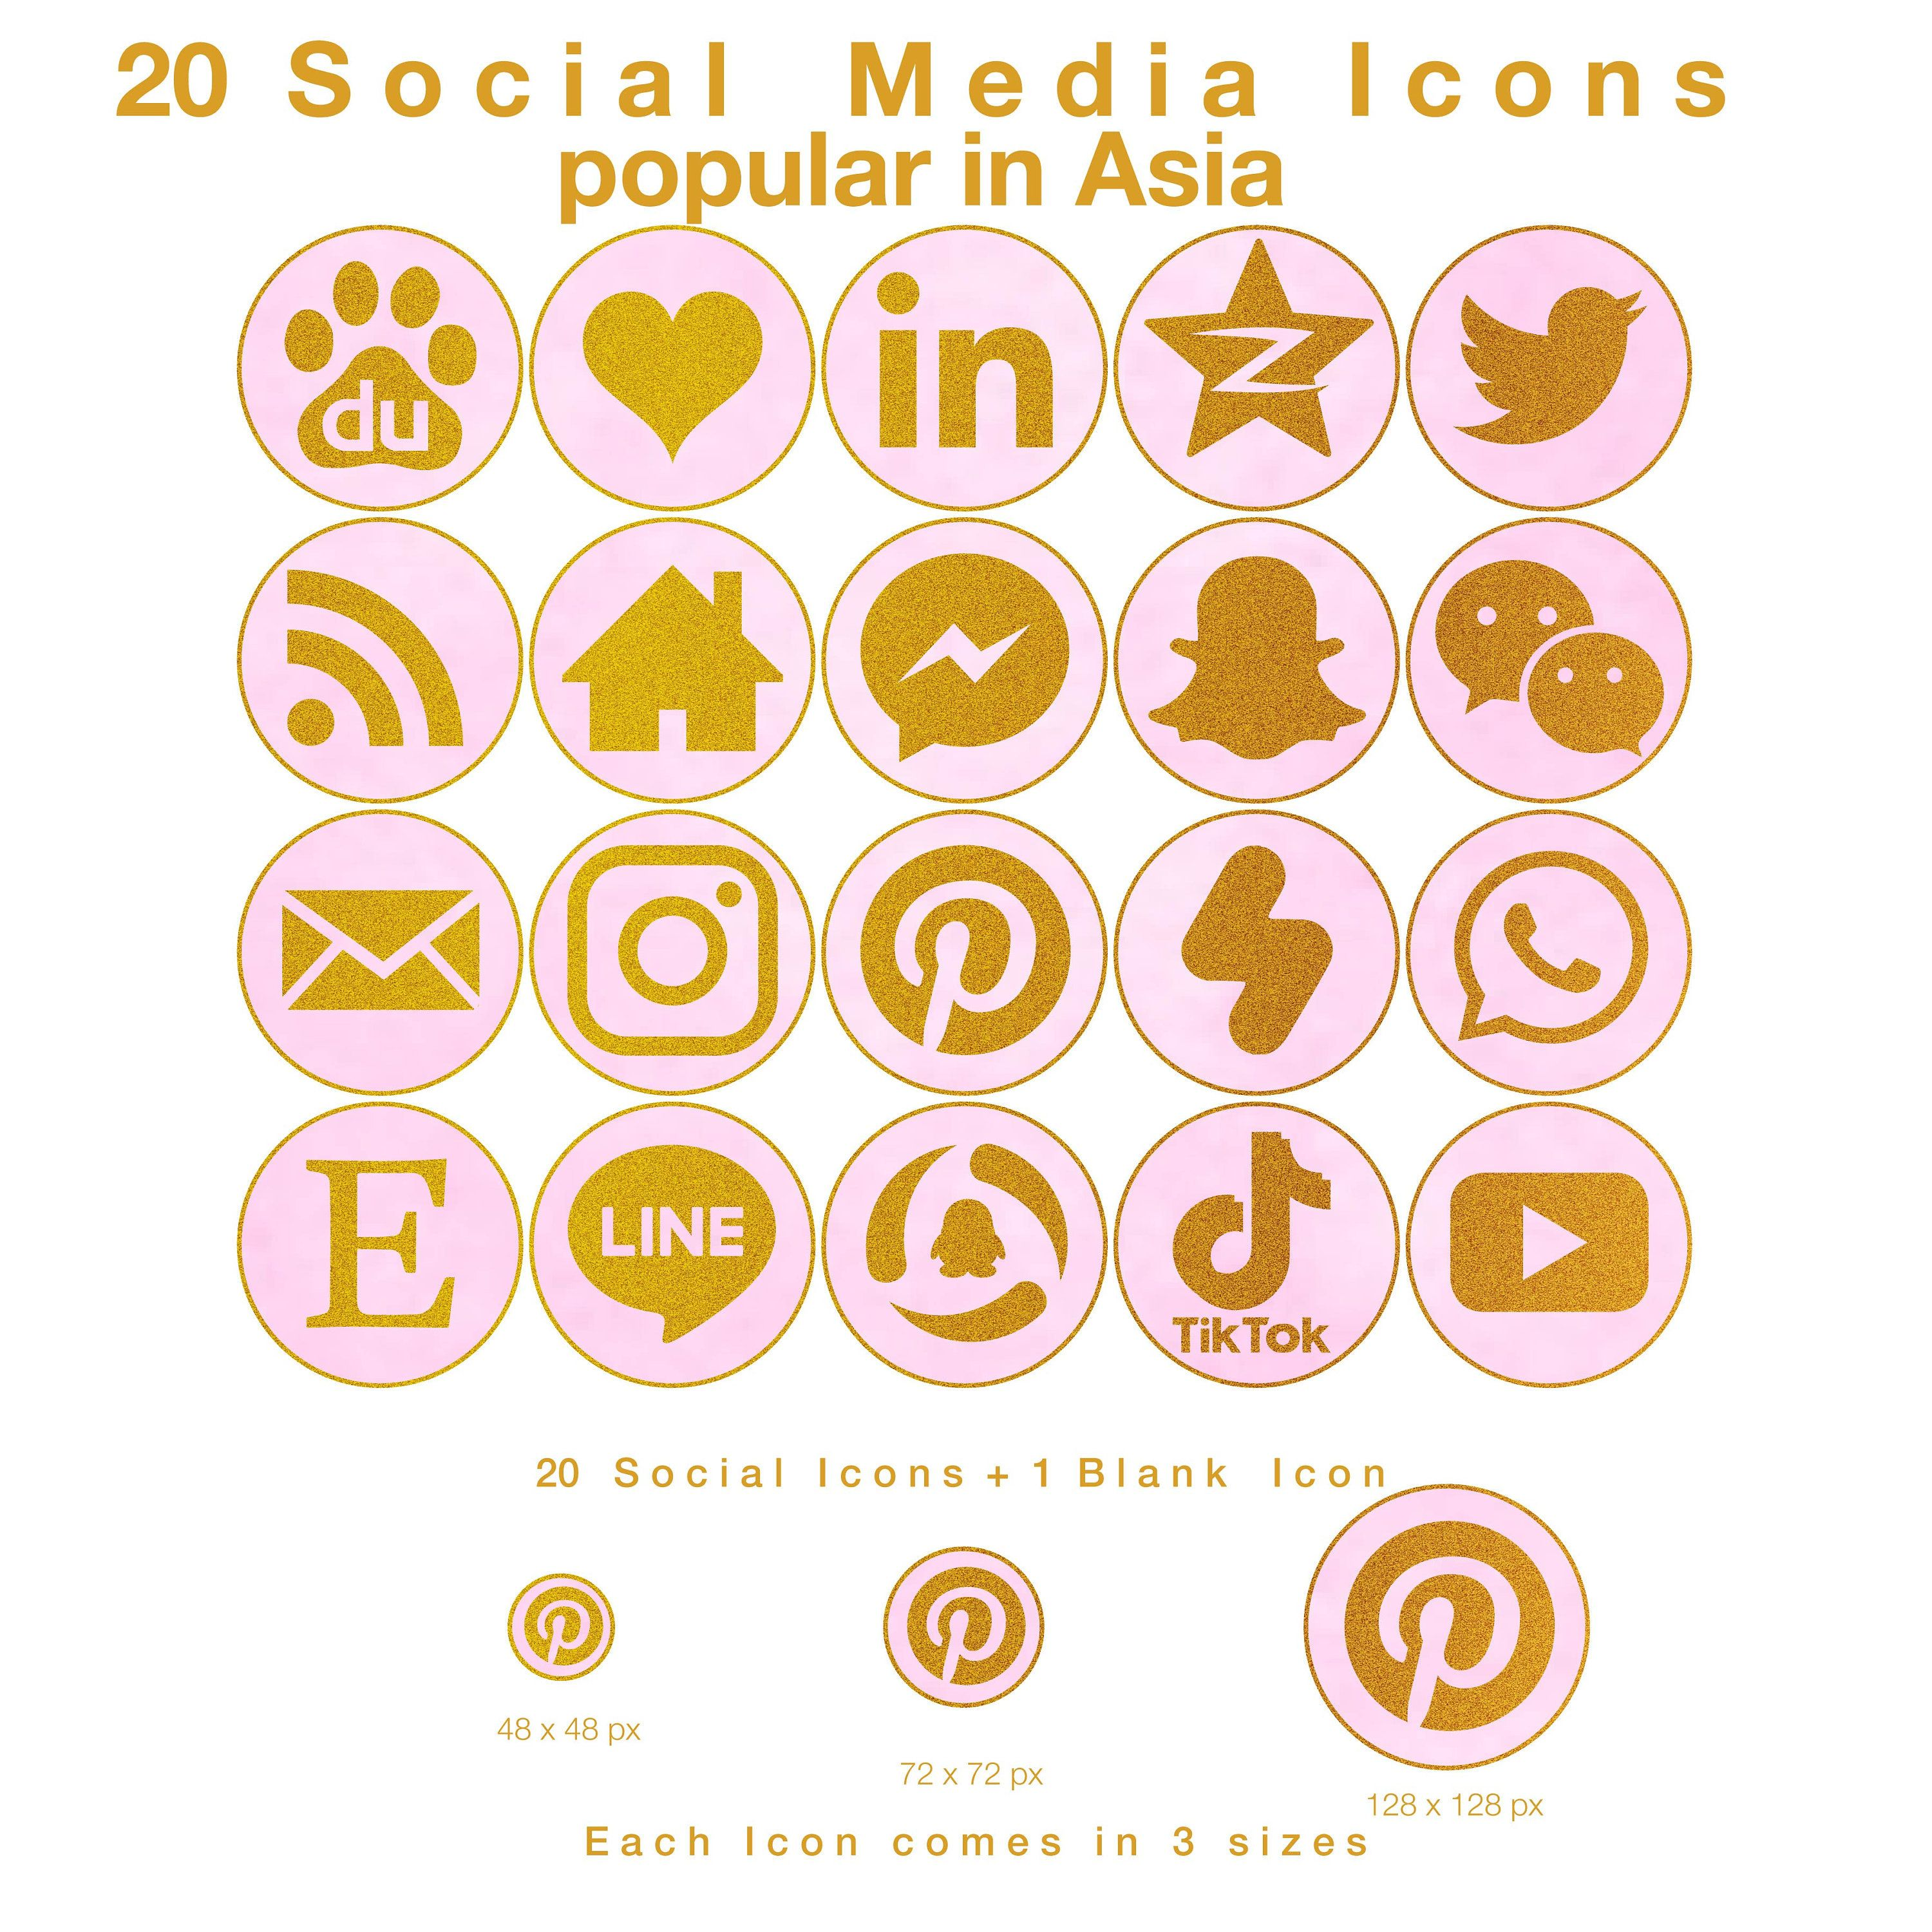 20 Web Blog Icons For Social Media Popular In Asia Gold On